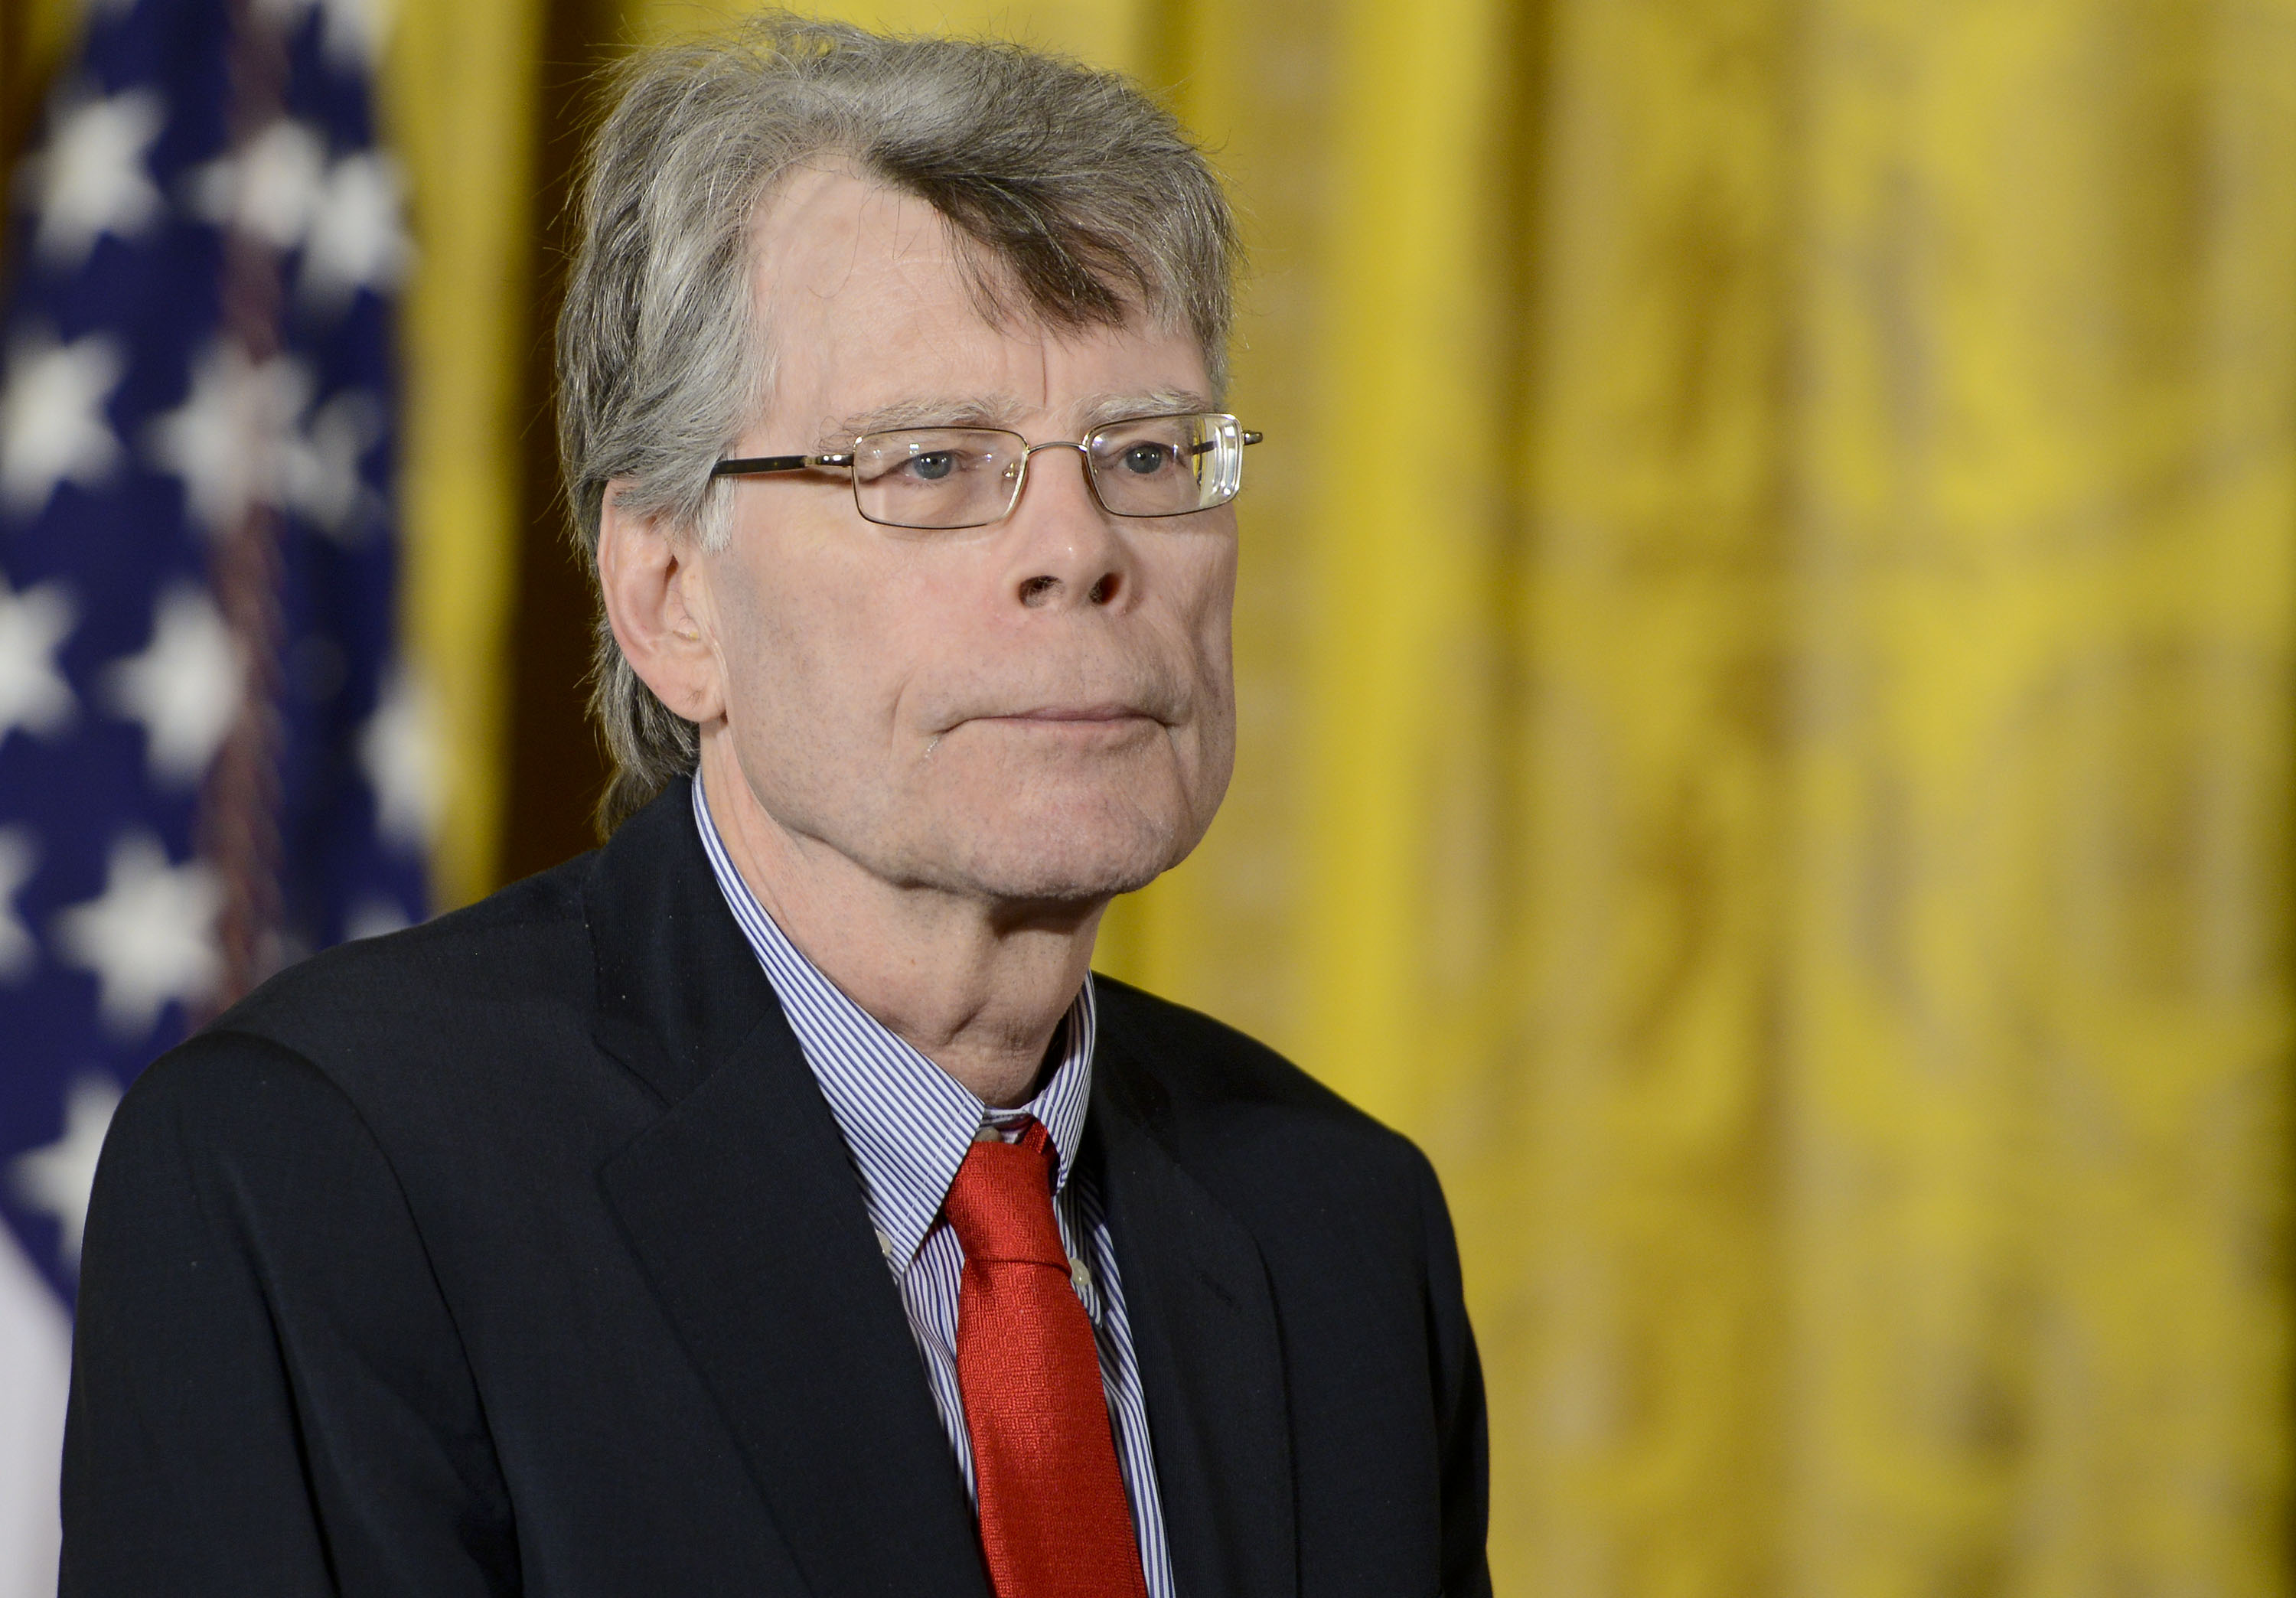 Stephen King is presented with the 2014 National Medal of Arts at The White House in Washington on Sept. 10, 2015.